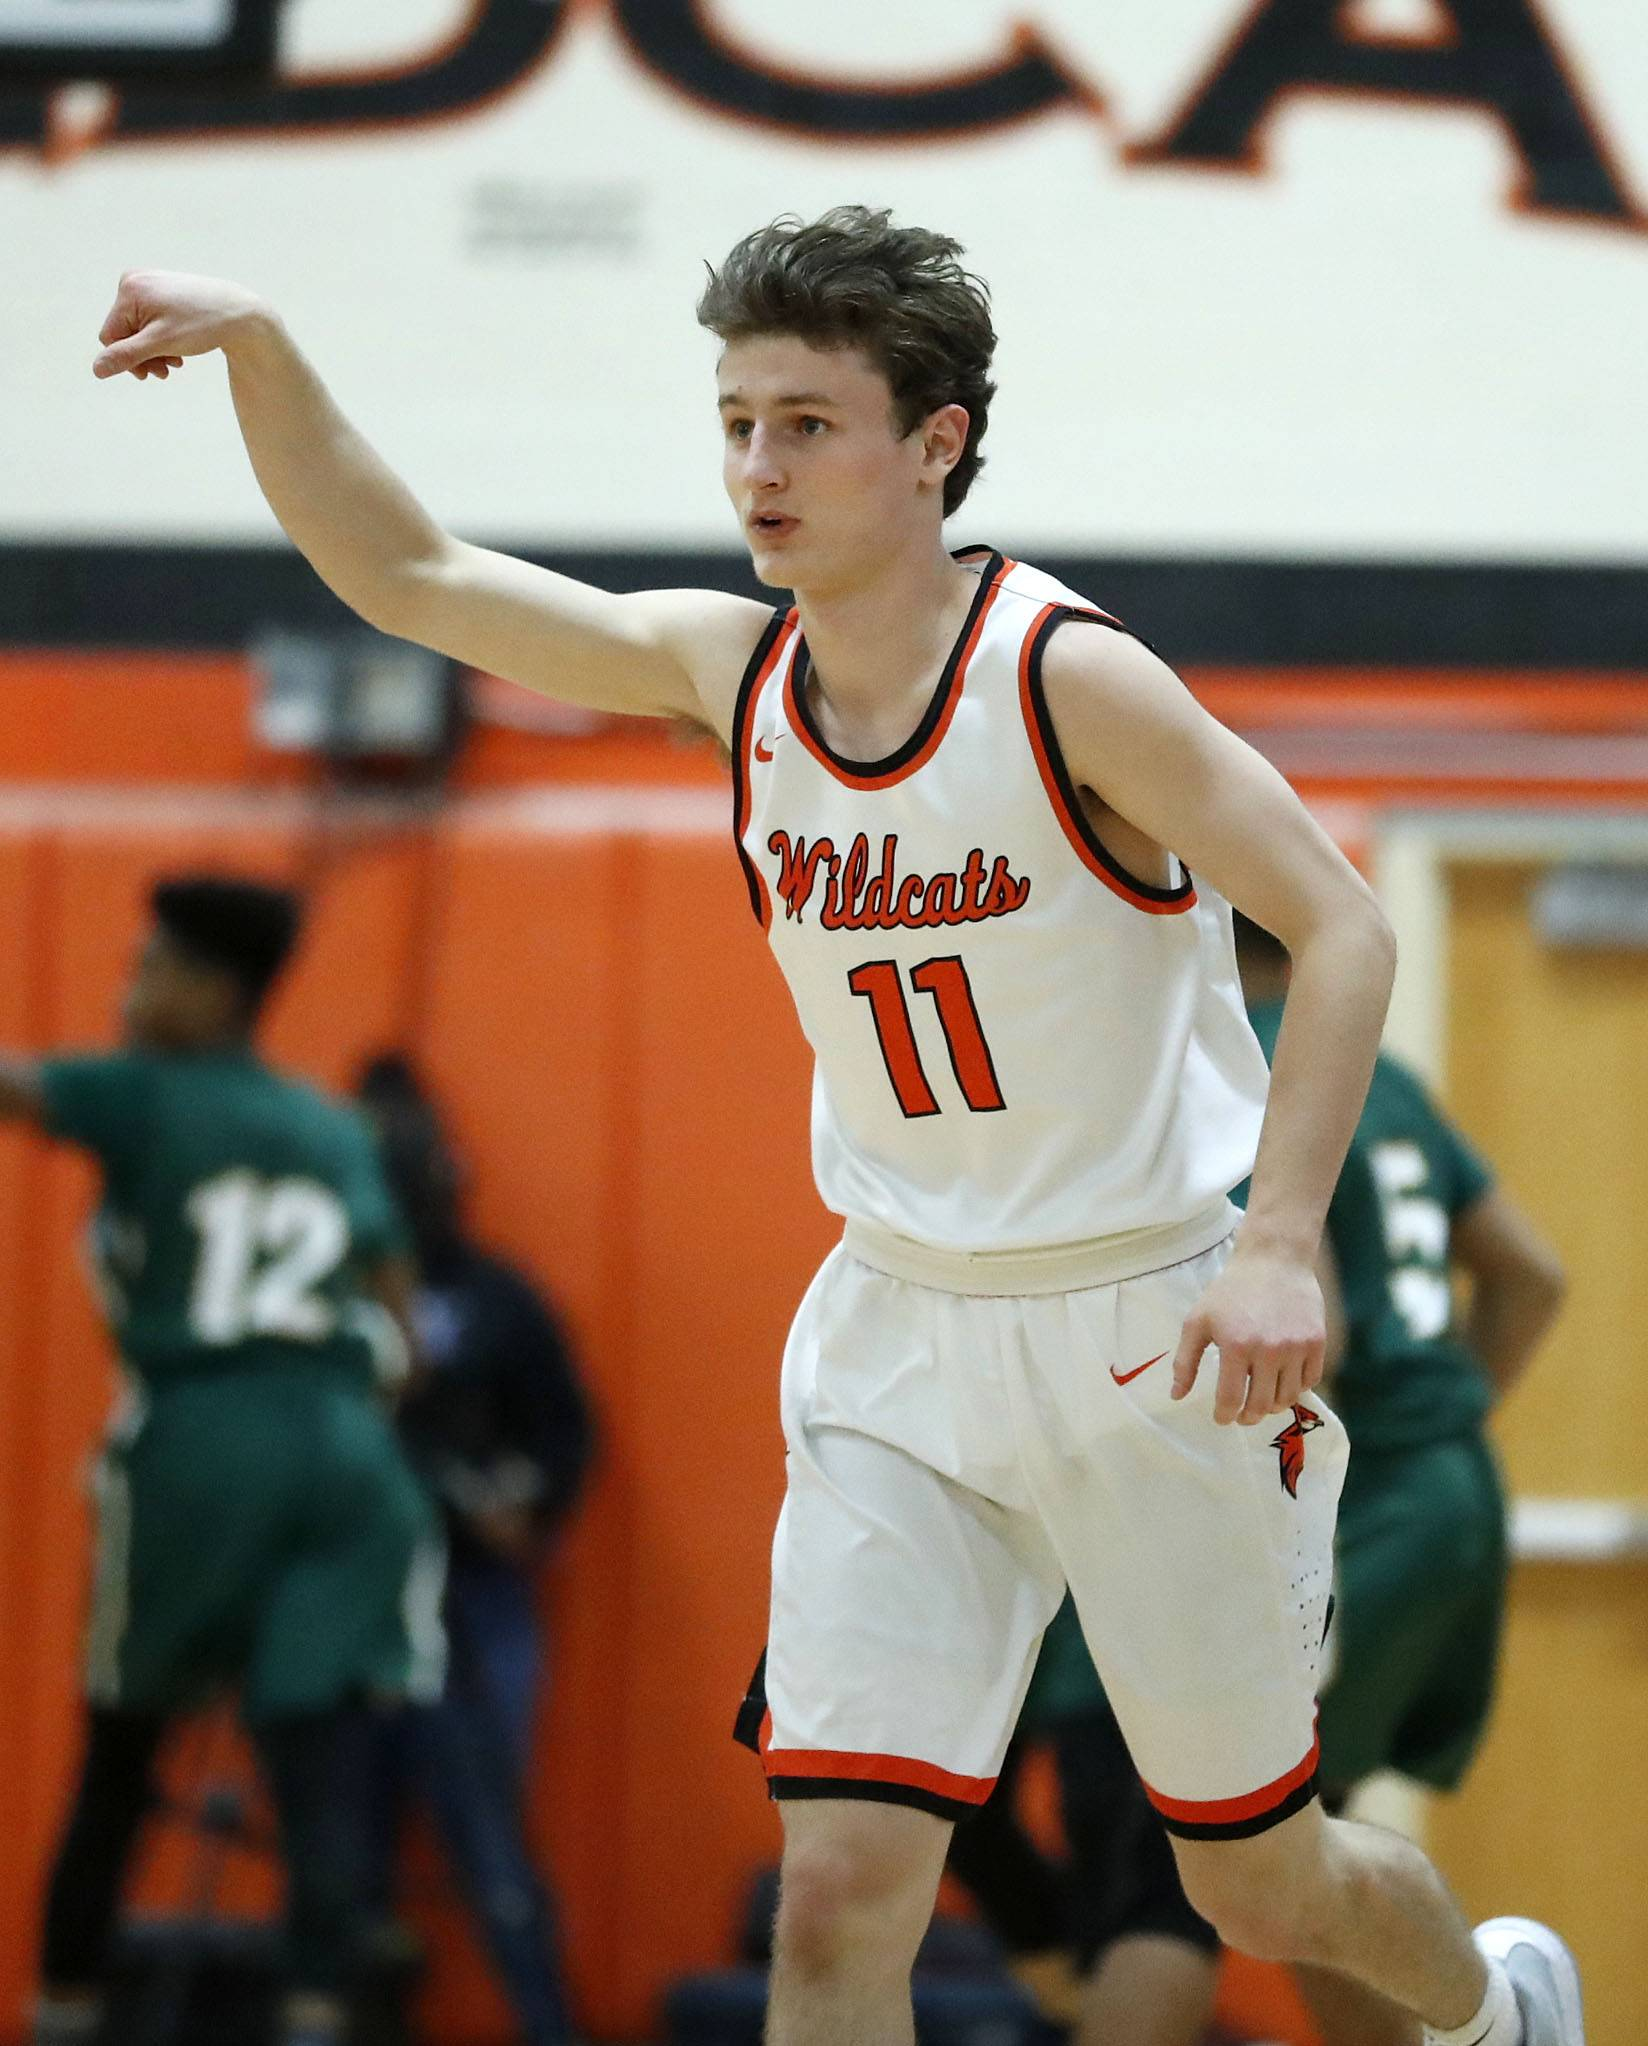 Libertyville's Josh Steinhaus gestures after hitting a 3-pointer during their game against Stevenson Tuesday night in Libertyville.